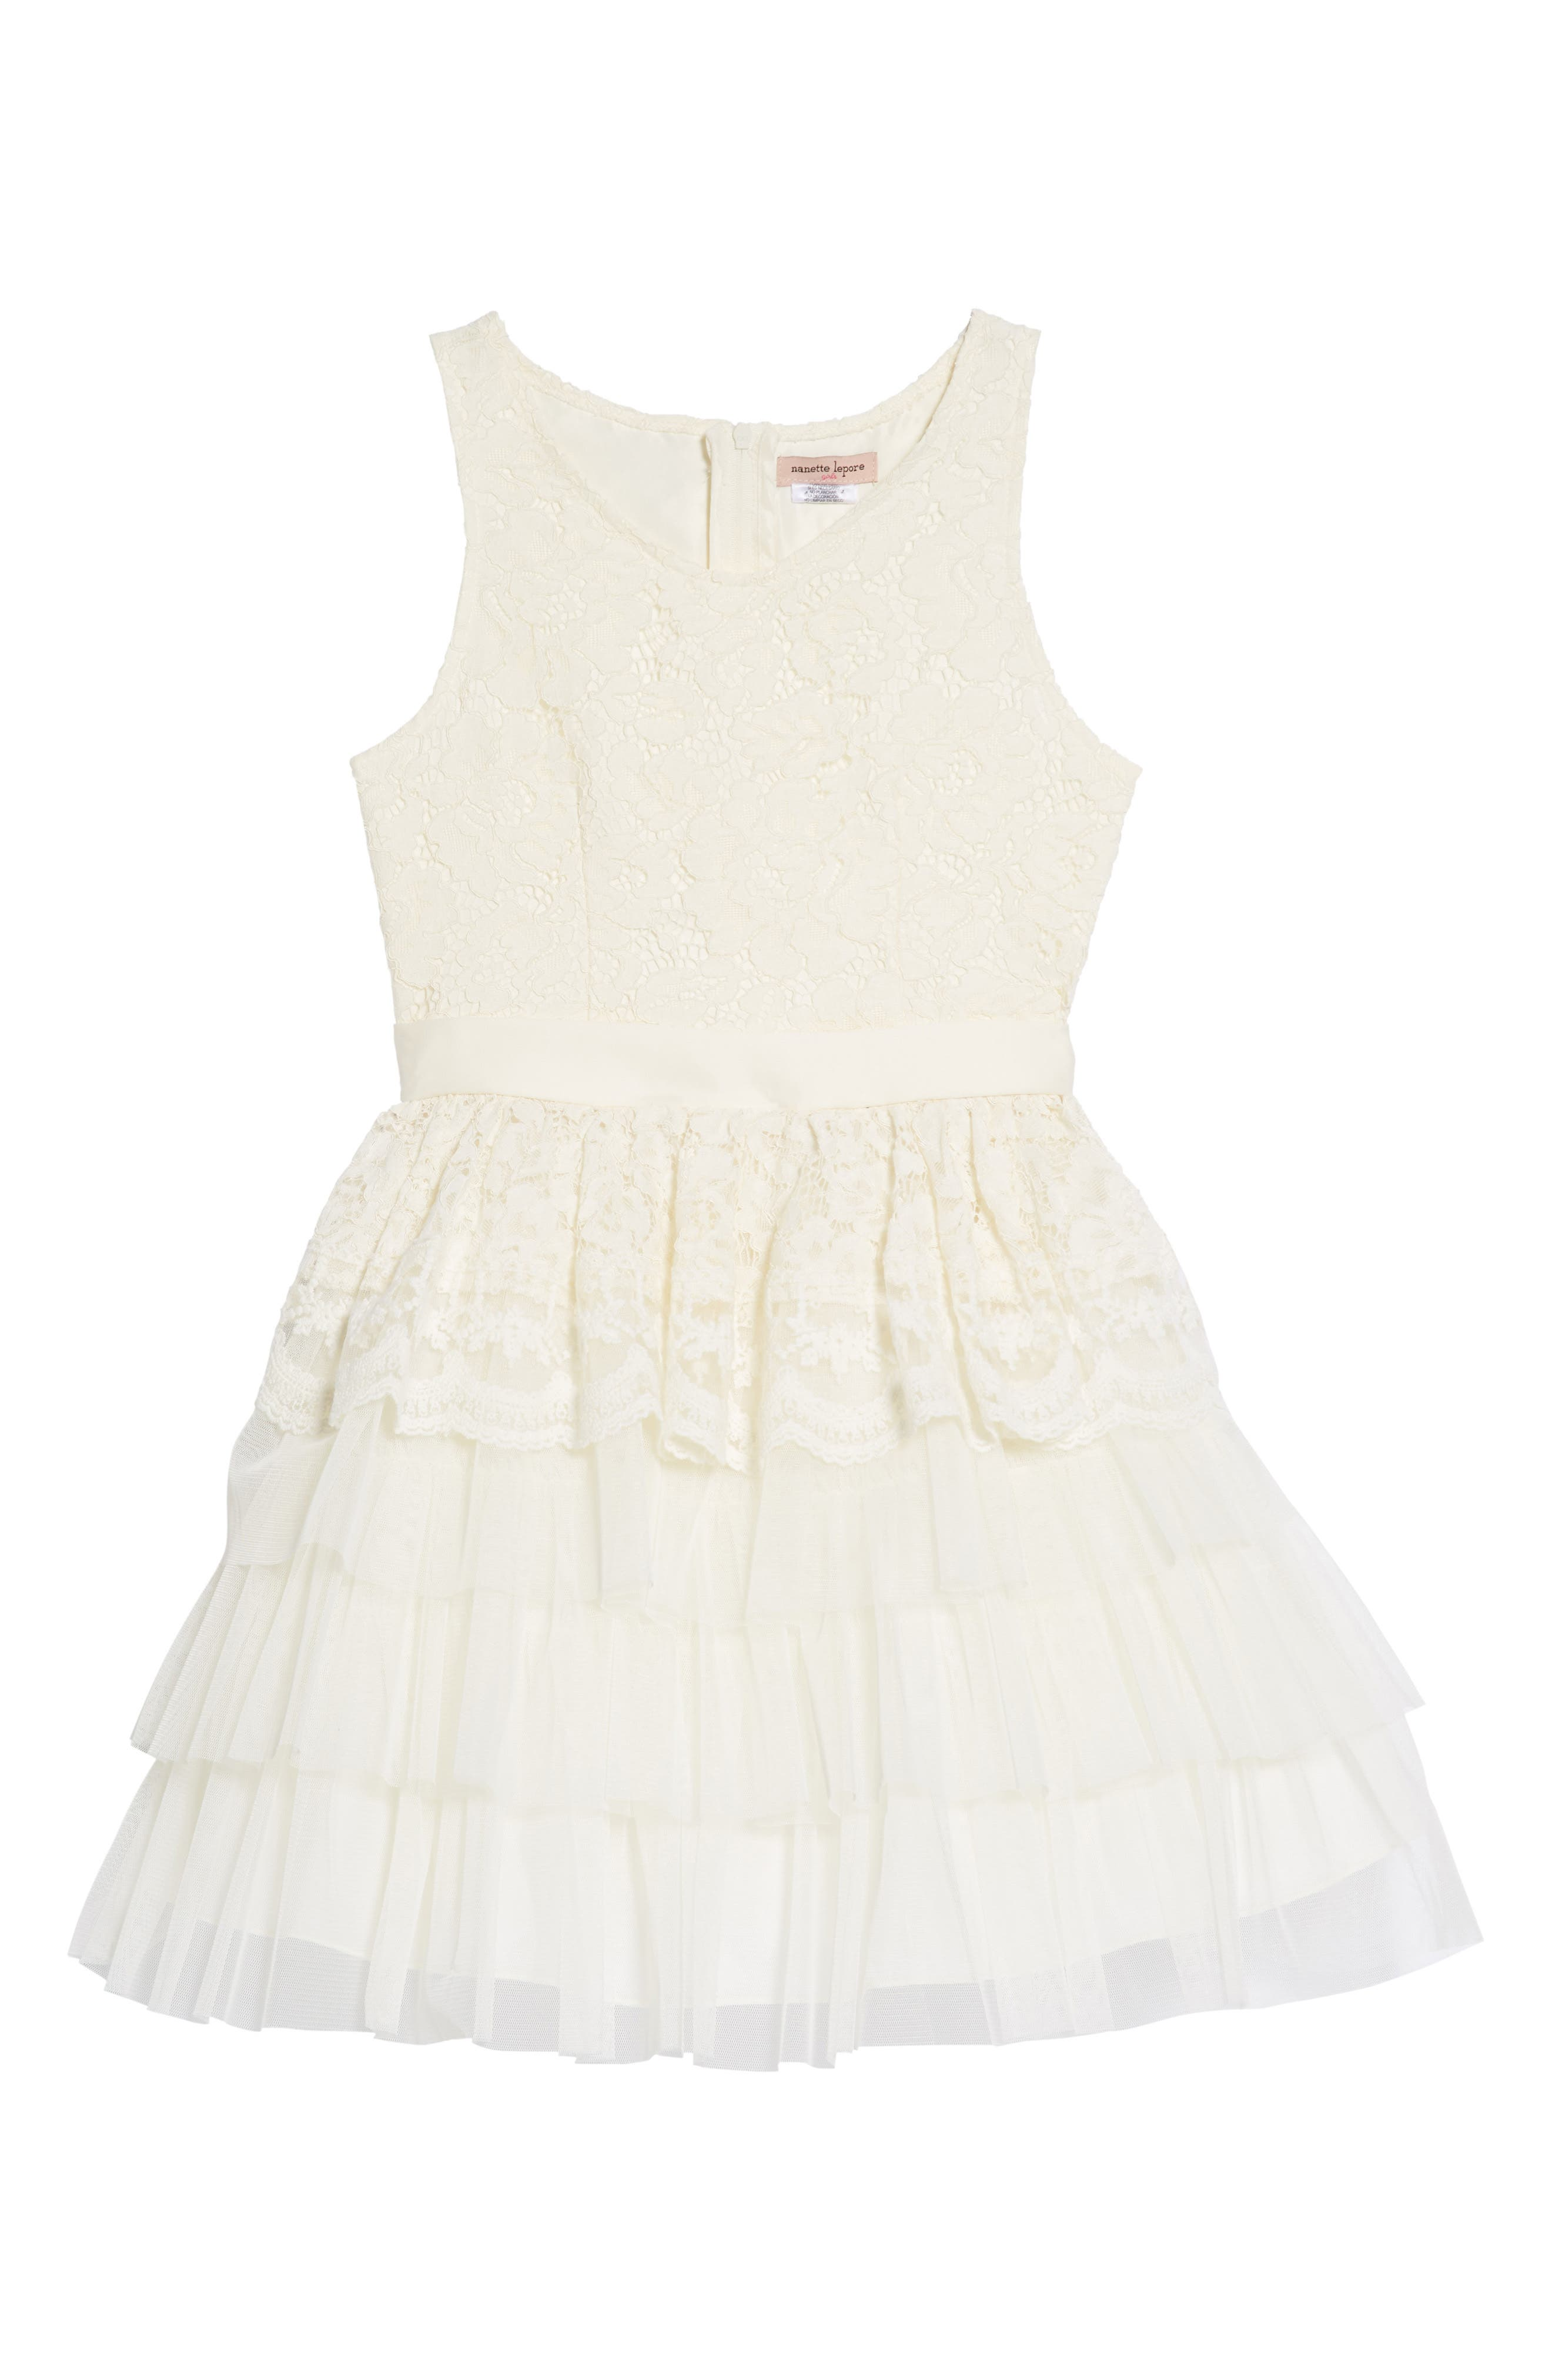 Tiered Lace & Tulle Dress,                             Main thumbnail 1, color,                             Cream